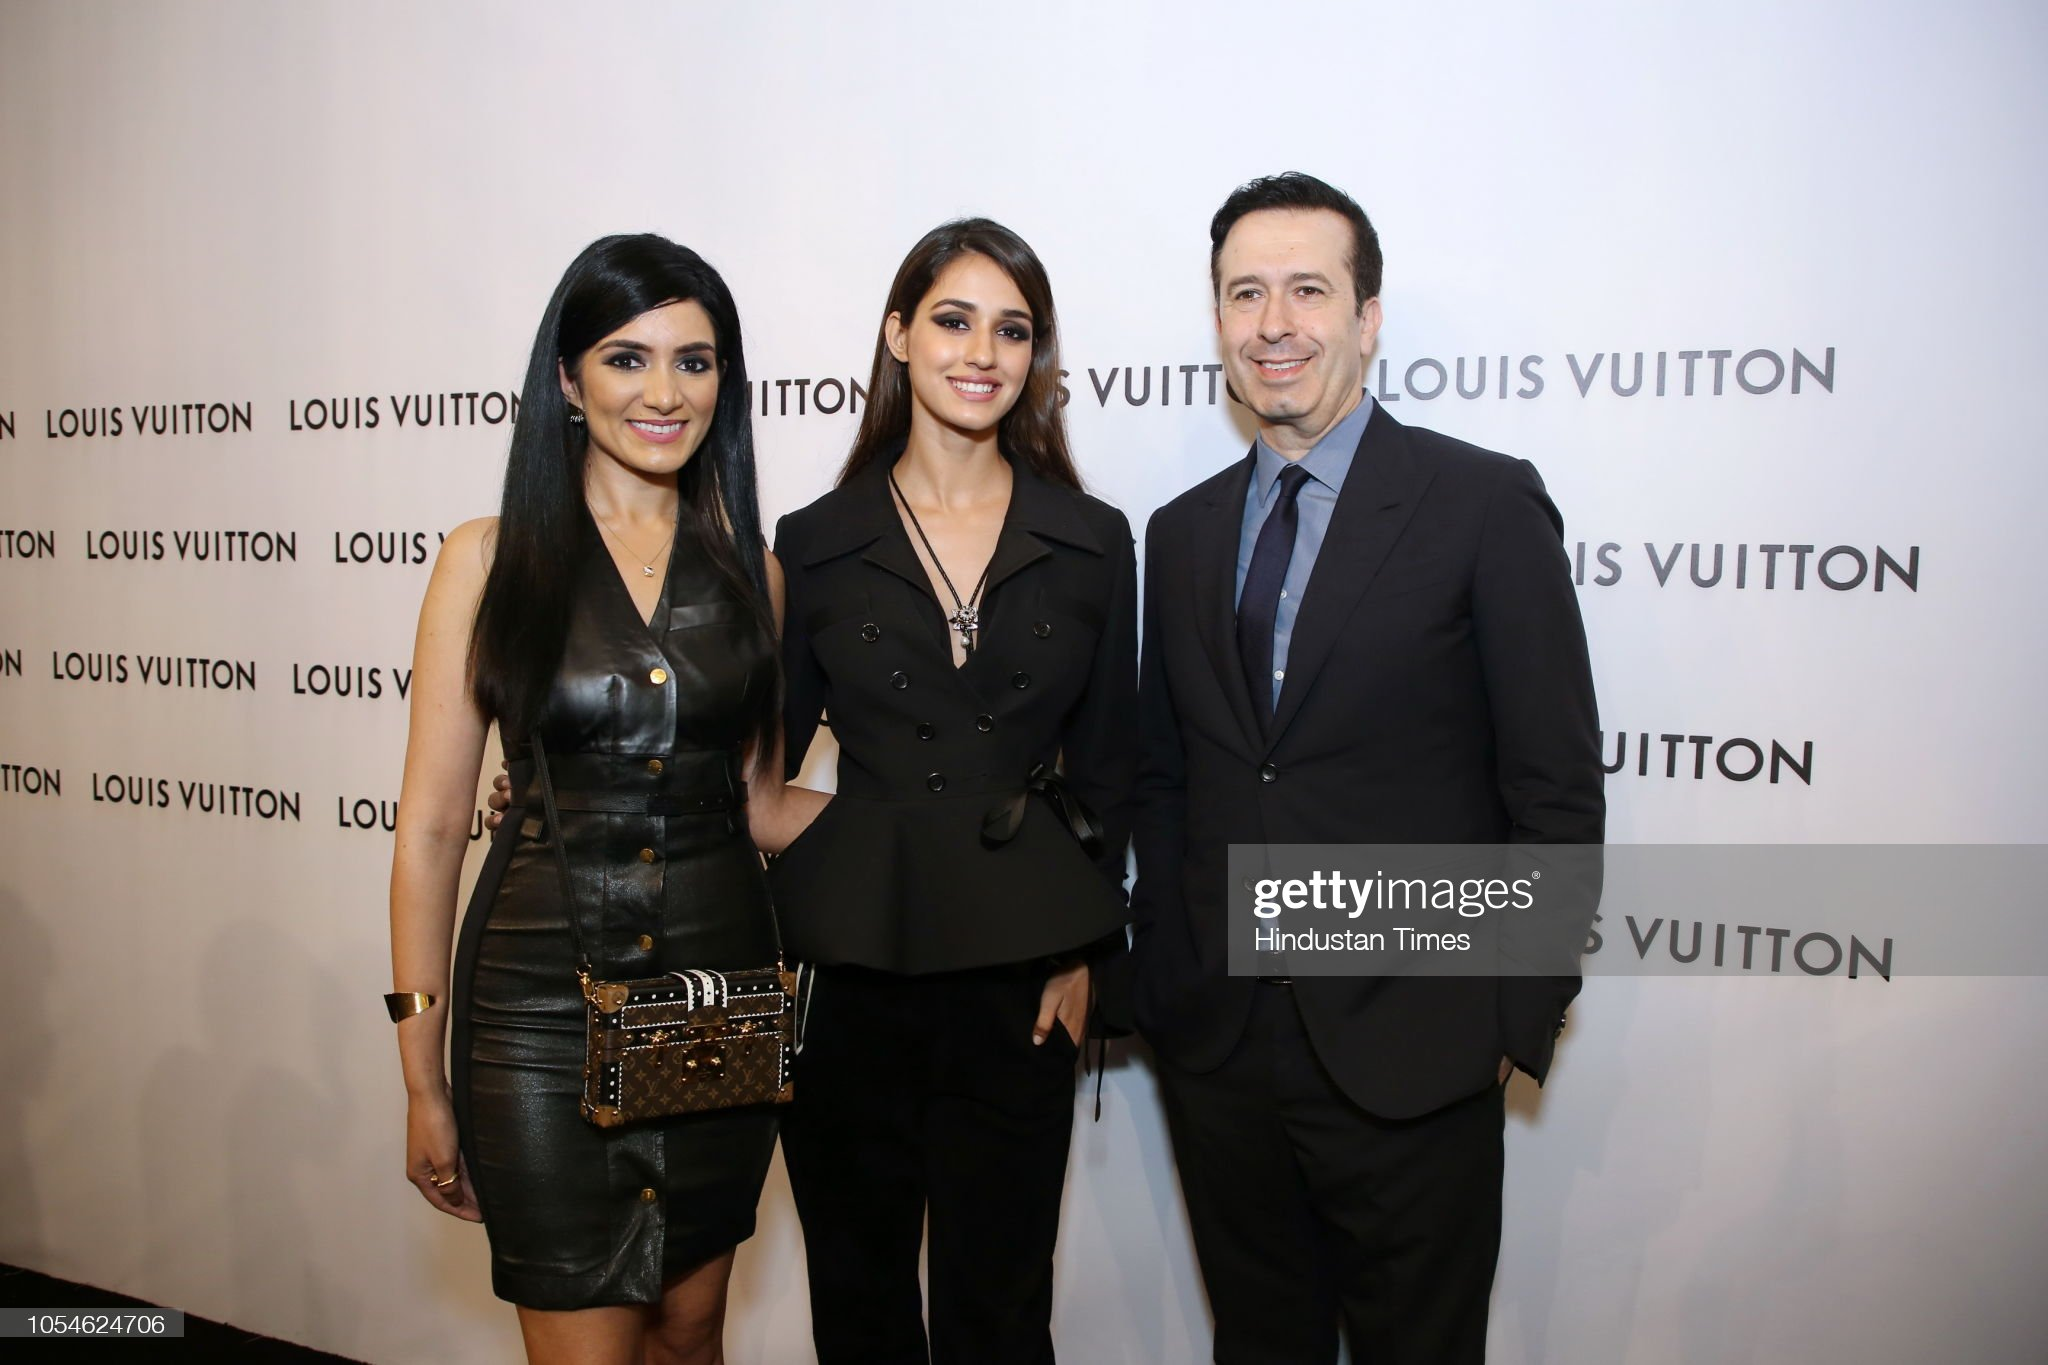 sunaina-kwatra-gm-louis-vuitton-india-with-bollywood-actor-disha-and-picture-id1054624706